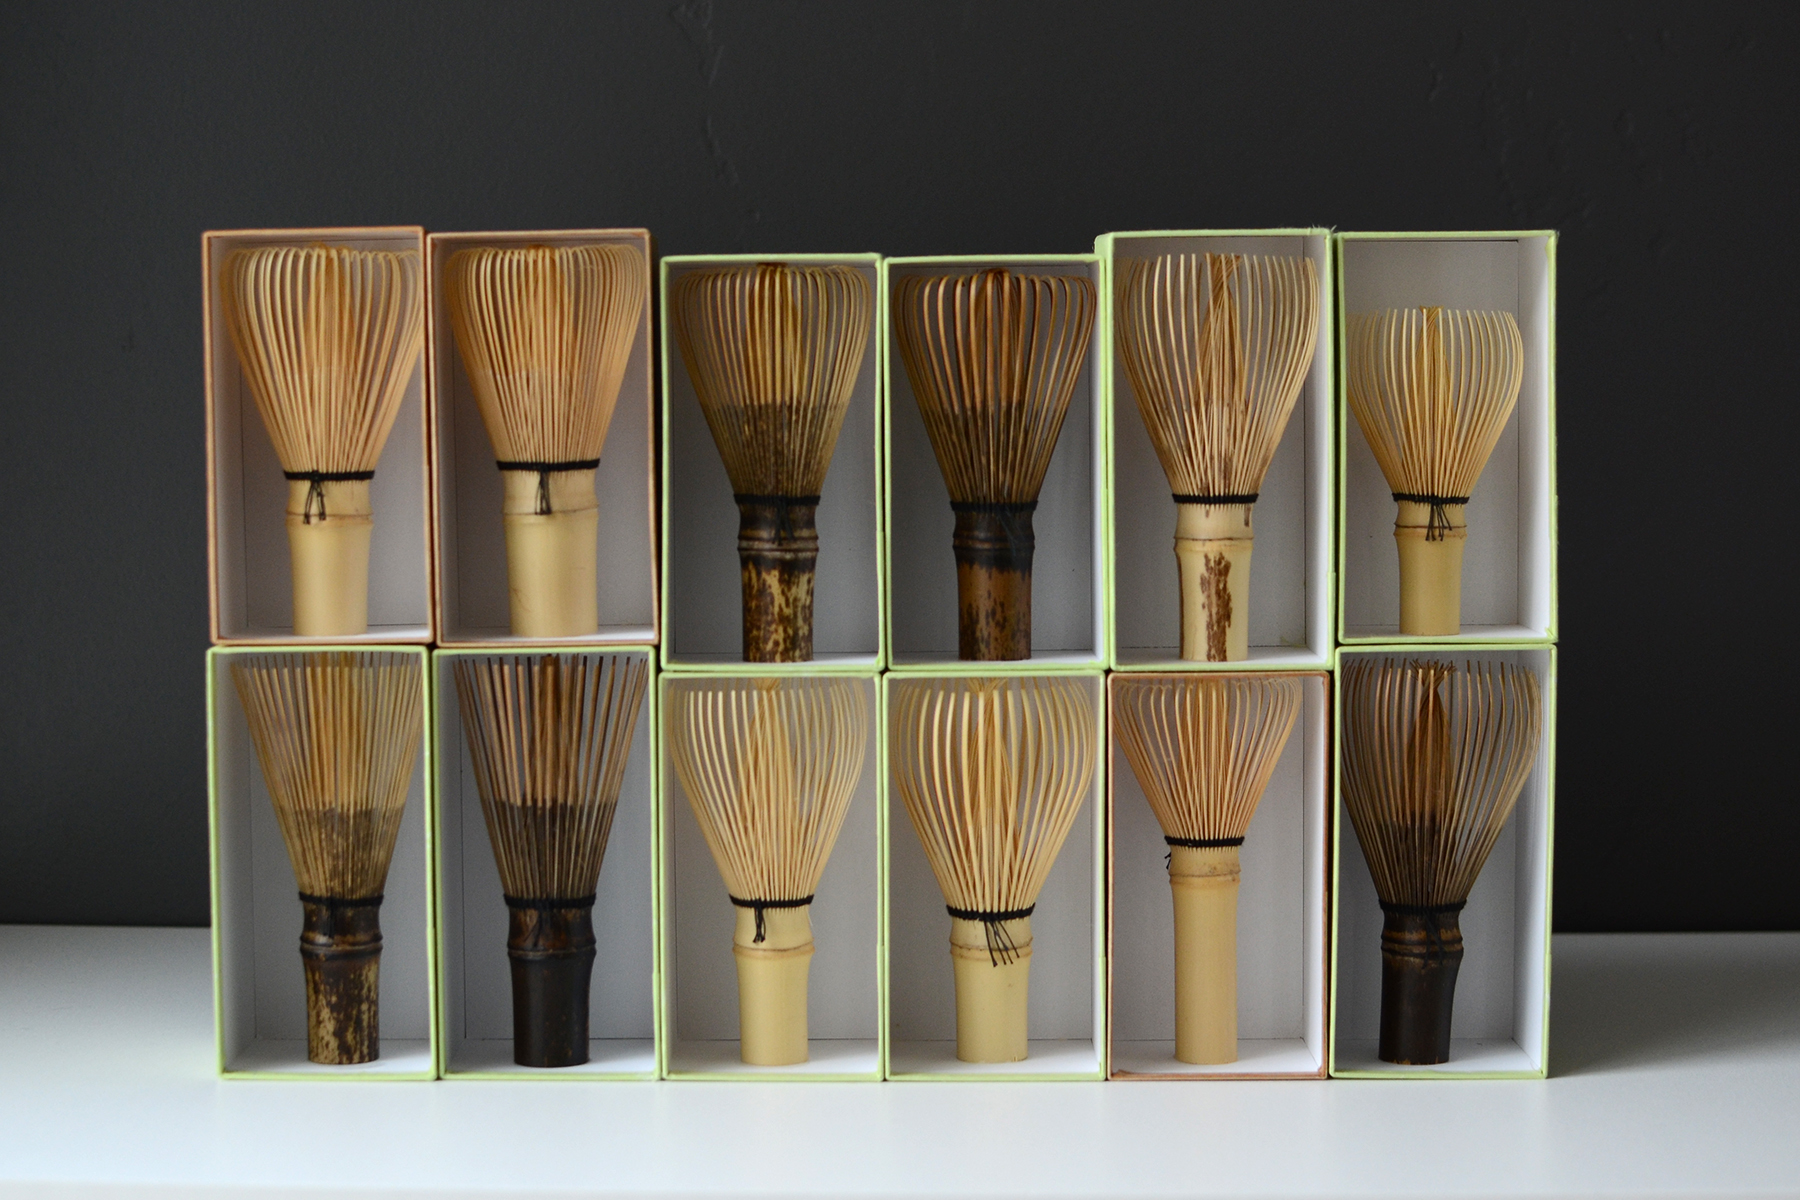 Tea Whisks by Tanimura Tango <br /> From the top left: Kazuho, Hachijuppondate, Sohenryu, Araho-Sohenryu, Unmondake shin-kazuho, Shin-kochasen <br /> From the bottom left: Soshuryu, Araho-Soshuryu, Shin-Kazuho, Shin-Araho, Tenmoku, Kurotake Shin Kazuho